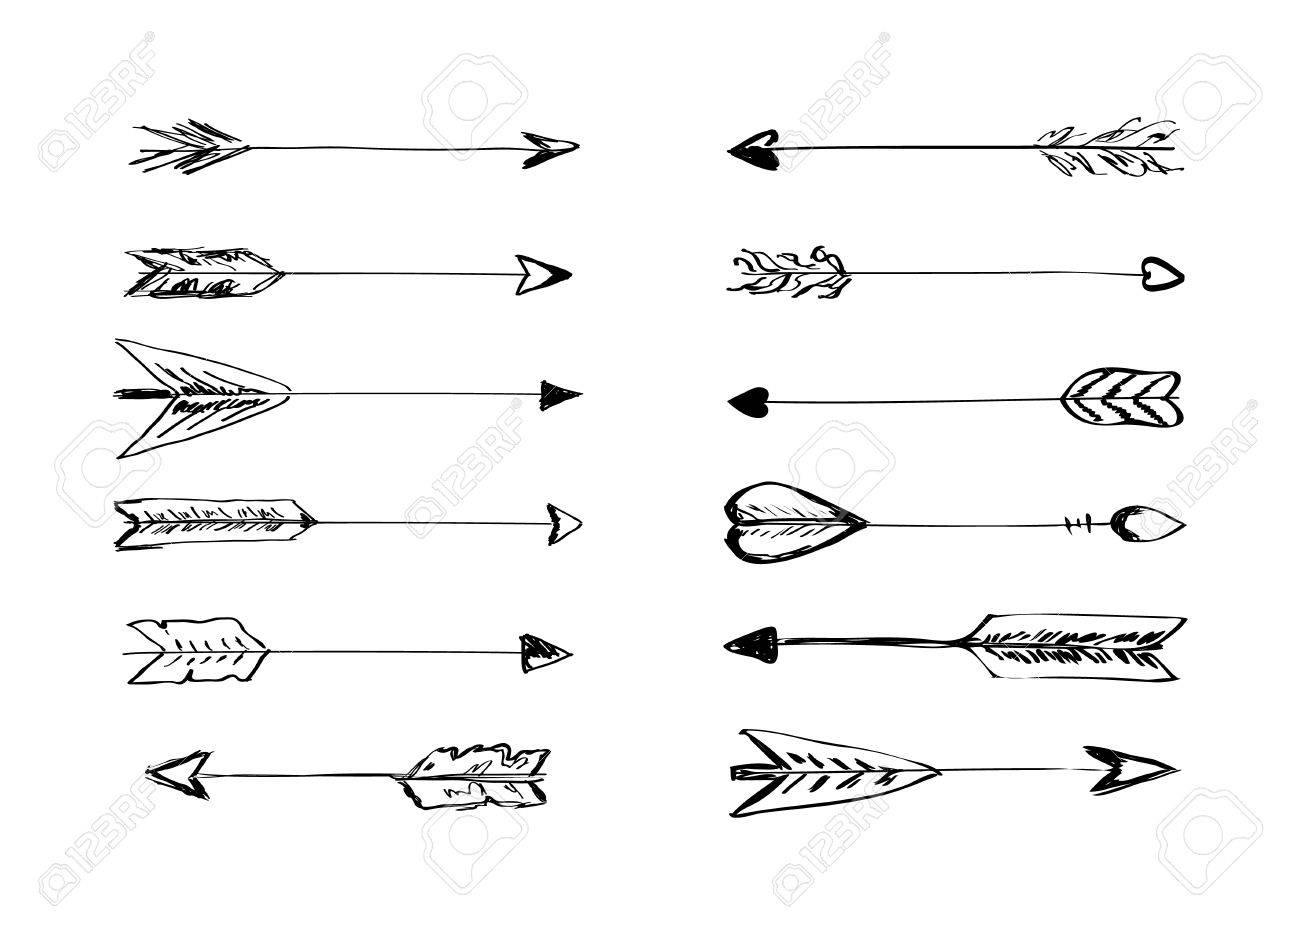 Hand Drawn Vector Arrows With Feathers Doodle Elements Royalty Free Cliparts Vectors And Stock Illustration Image 47067842